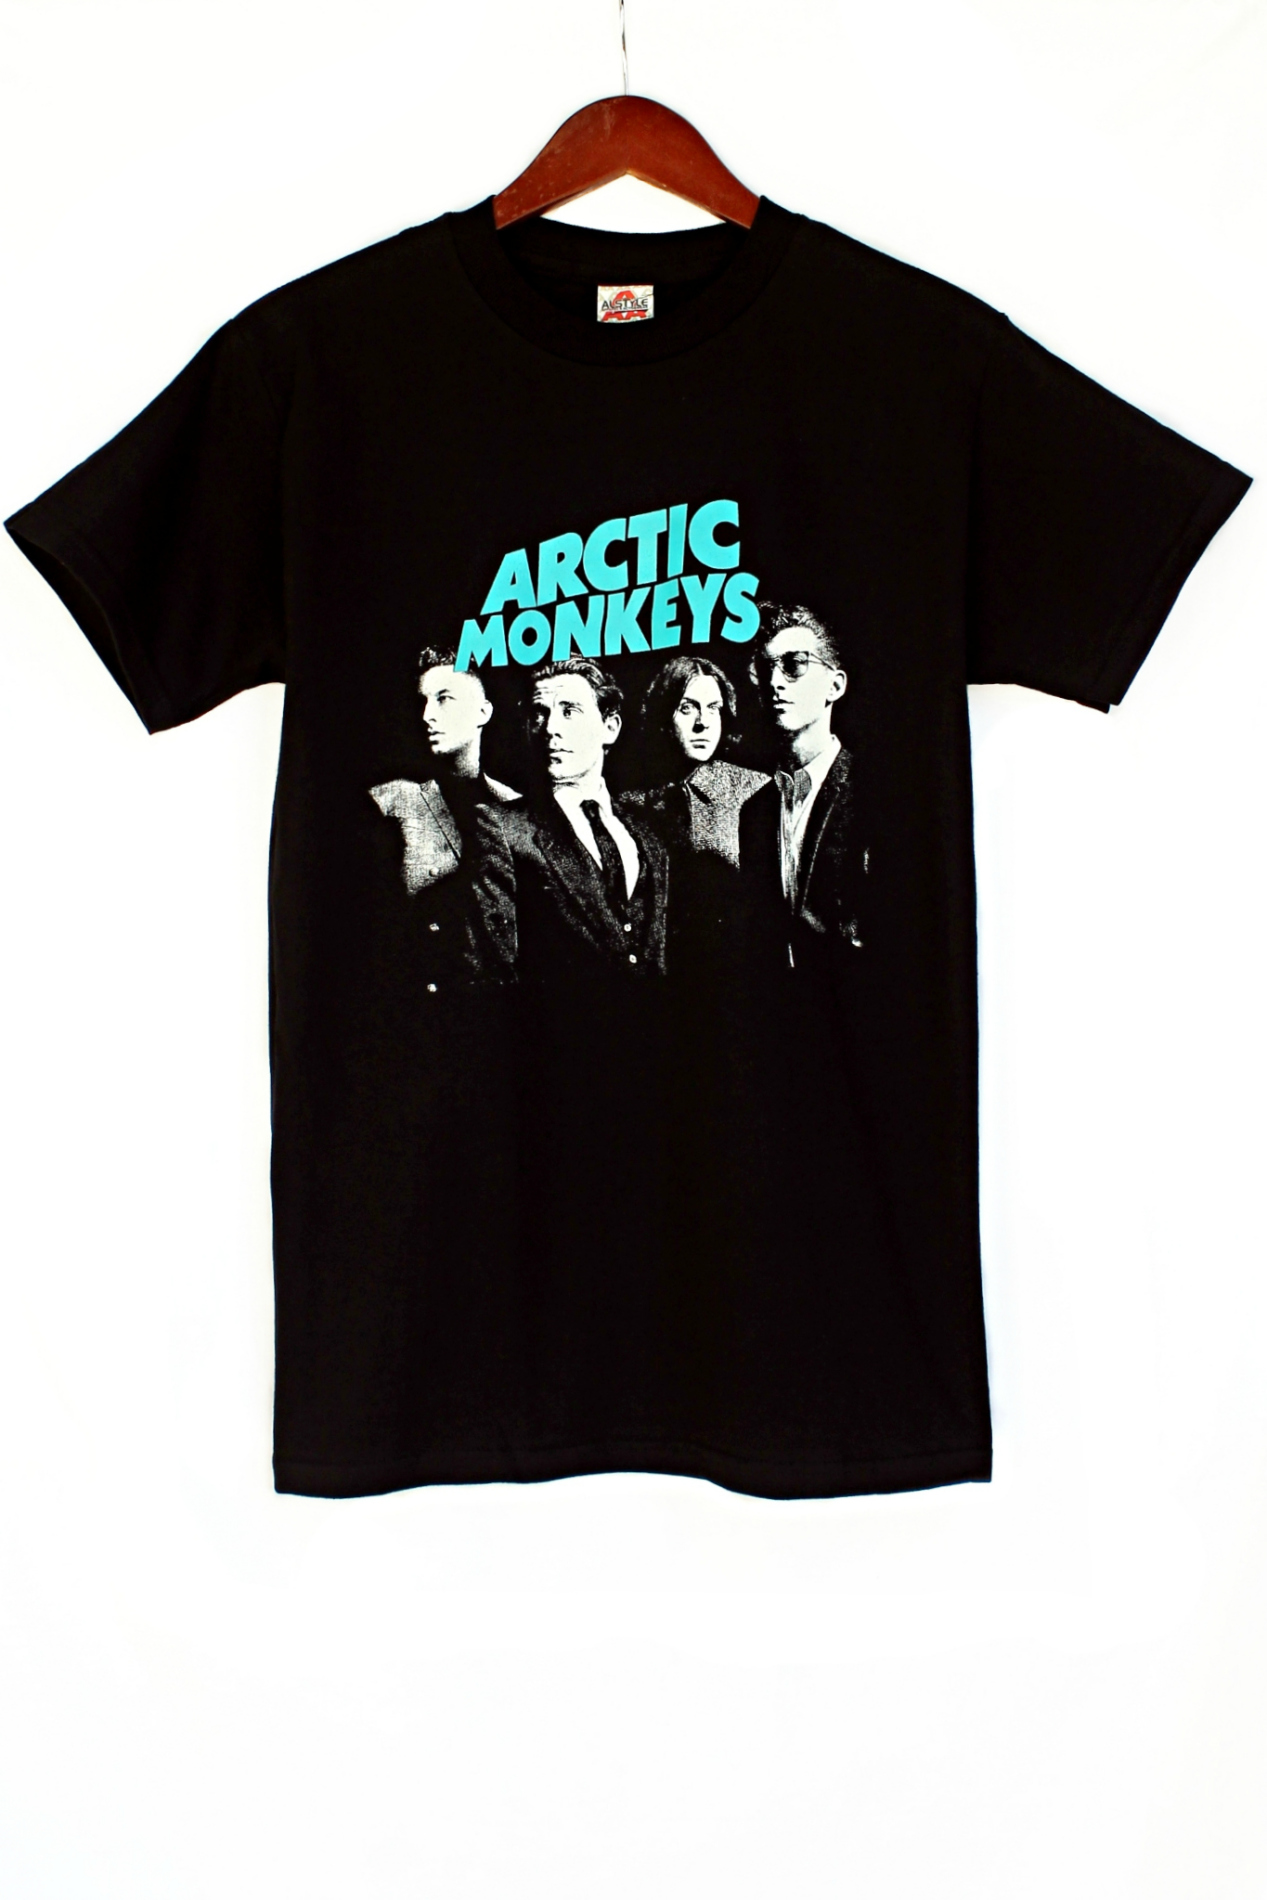 ARCTIC MONKEYS Tranquility Hotel casino Tour logo Men/'s New T shirt S to 3XL